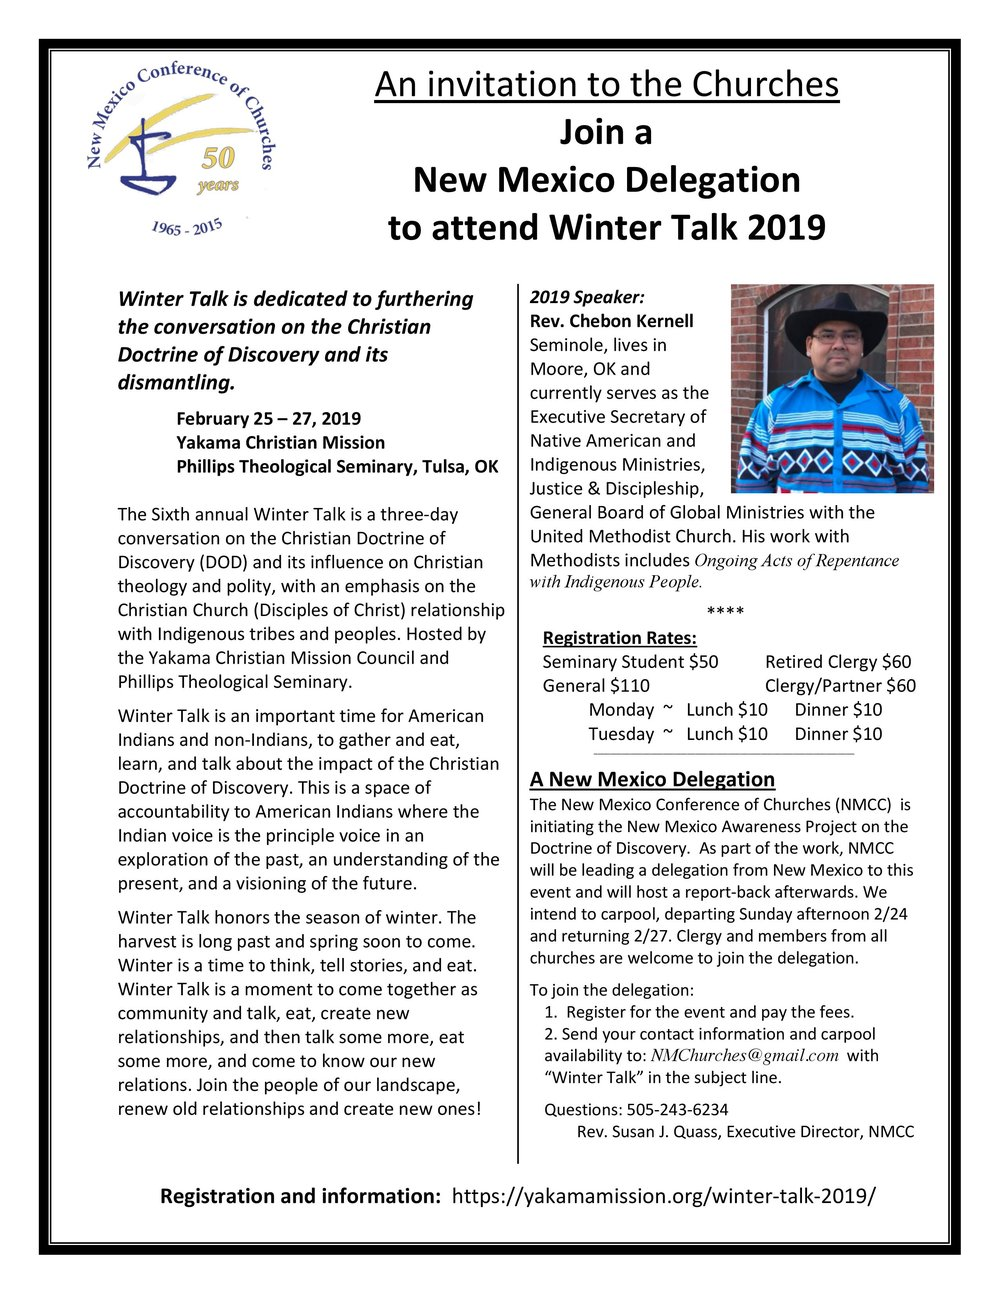 Winter Talk 2019 flyer NM delegation.jpg